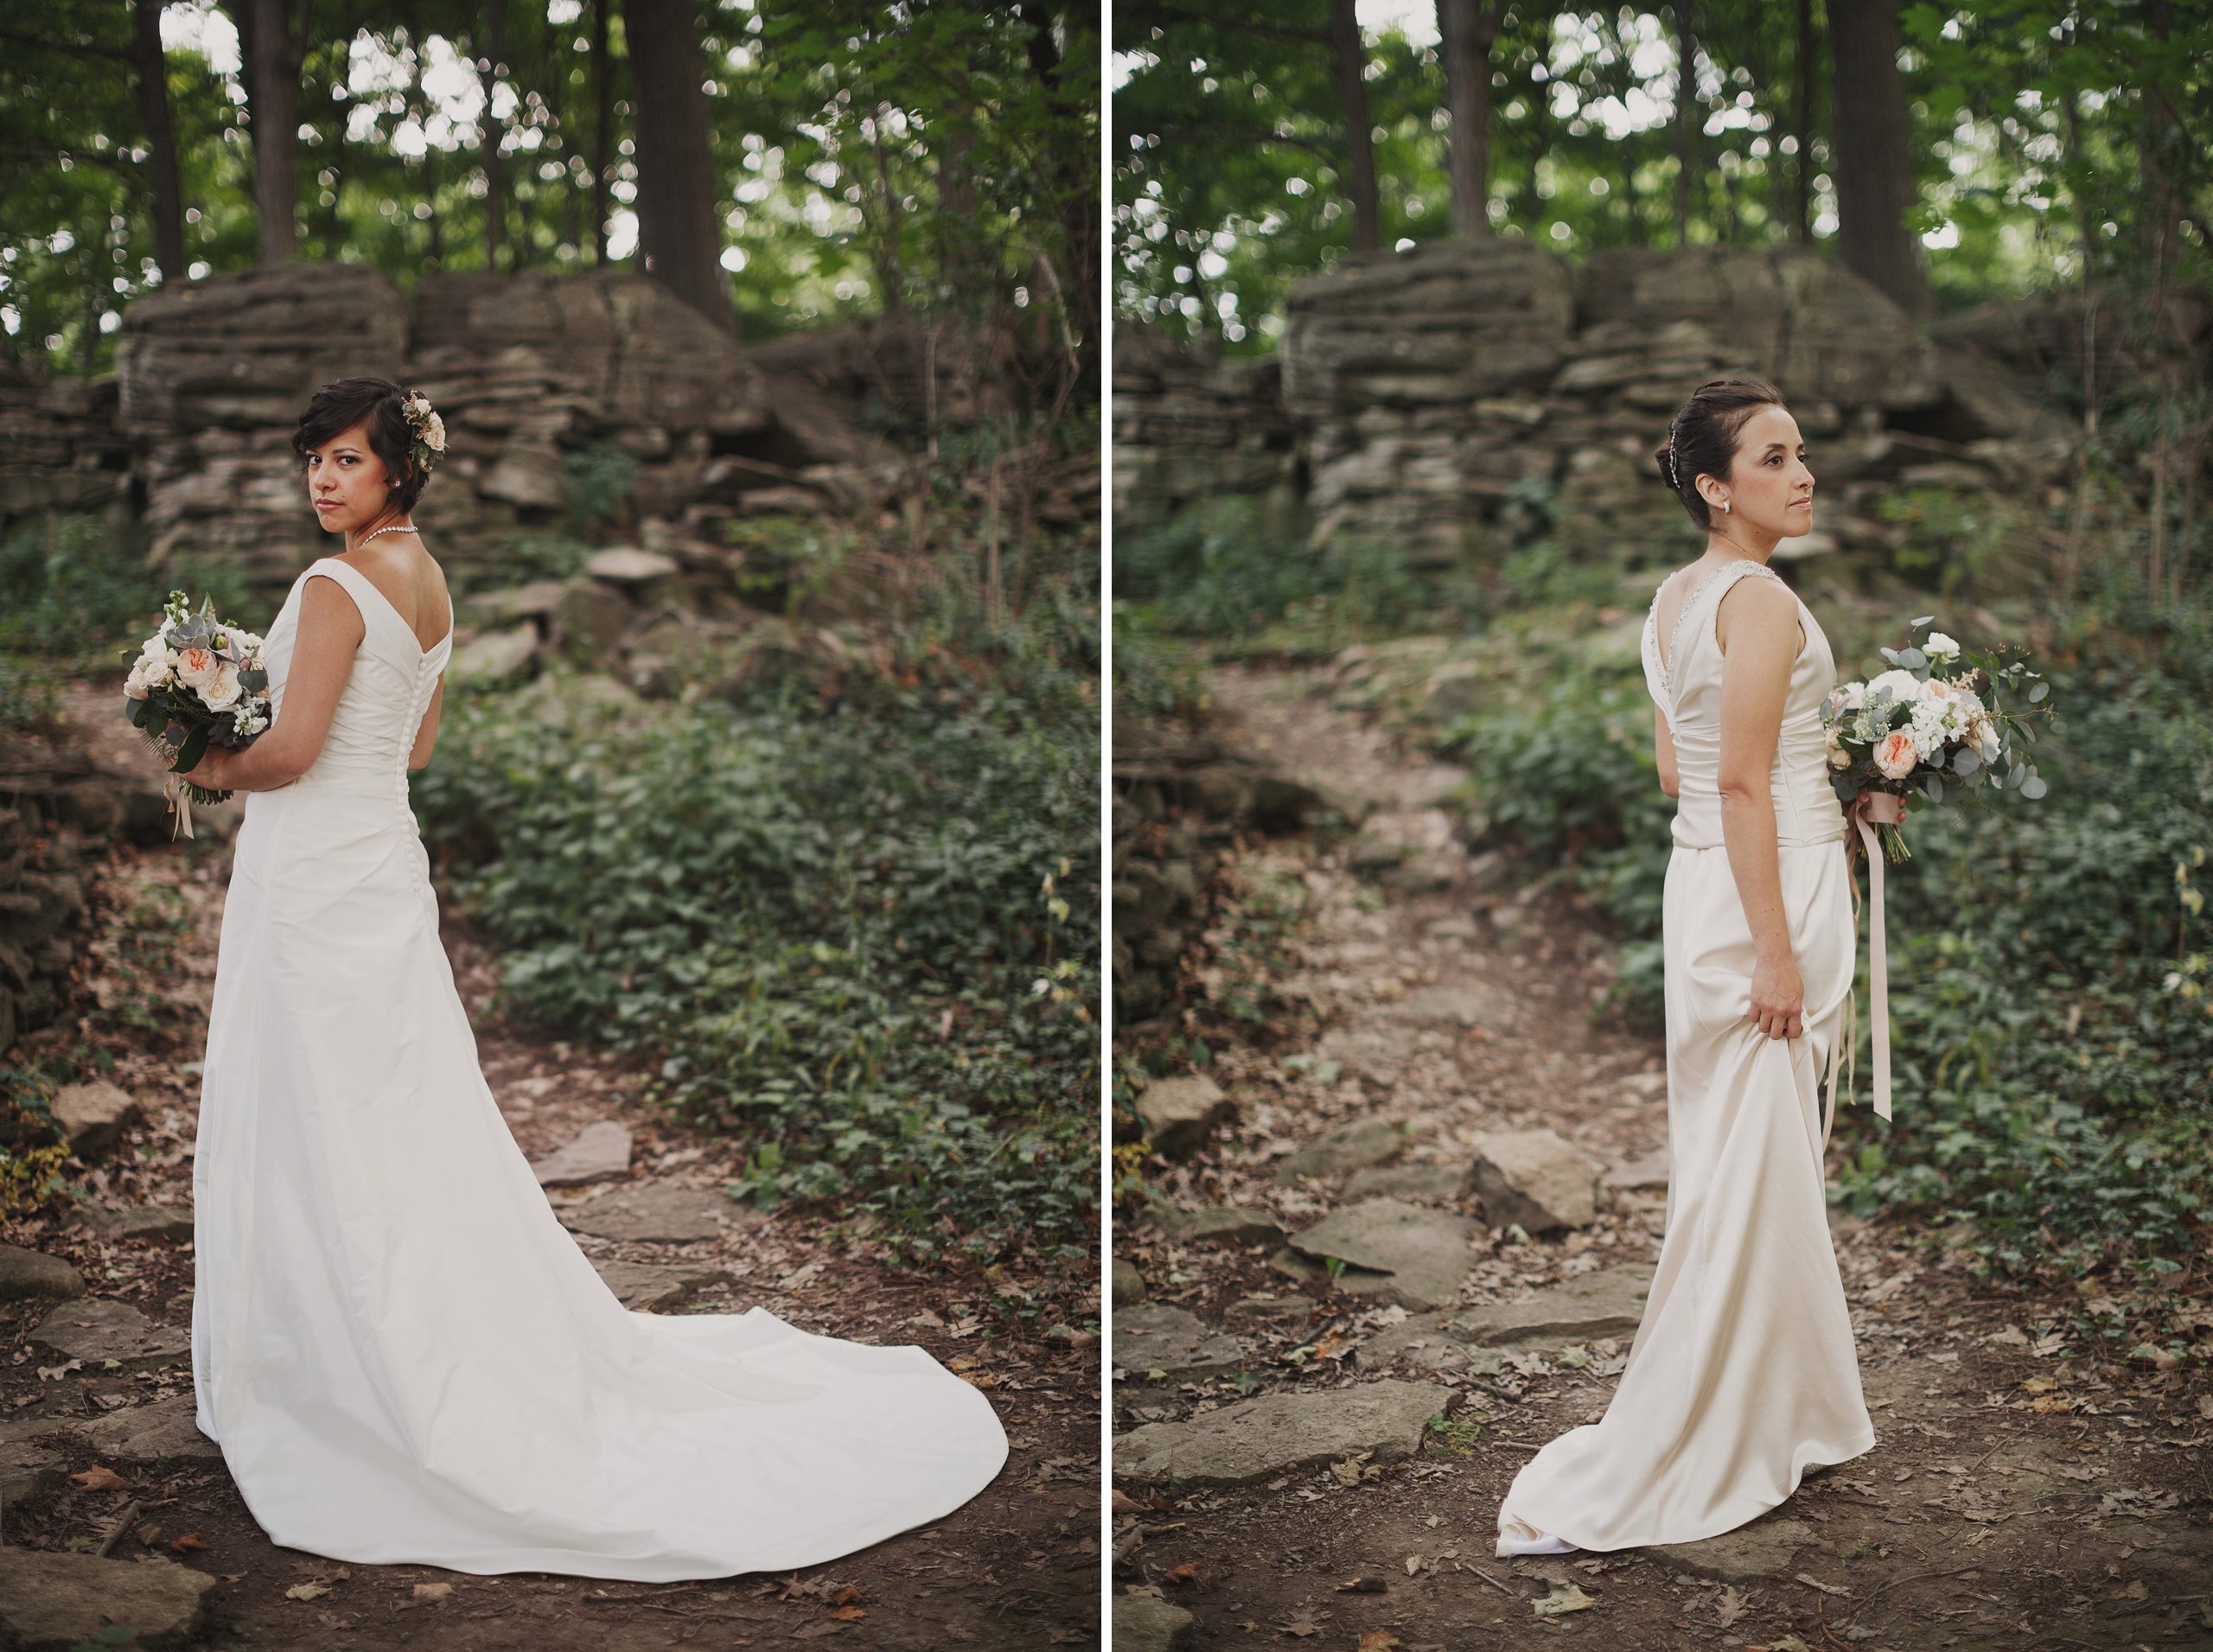 forest wedding two brides lgbtq photographer niagara